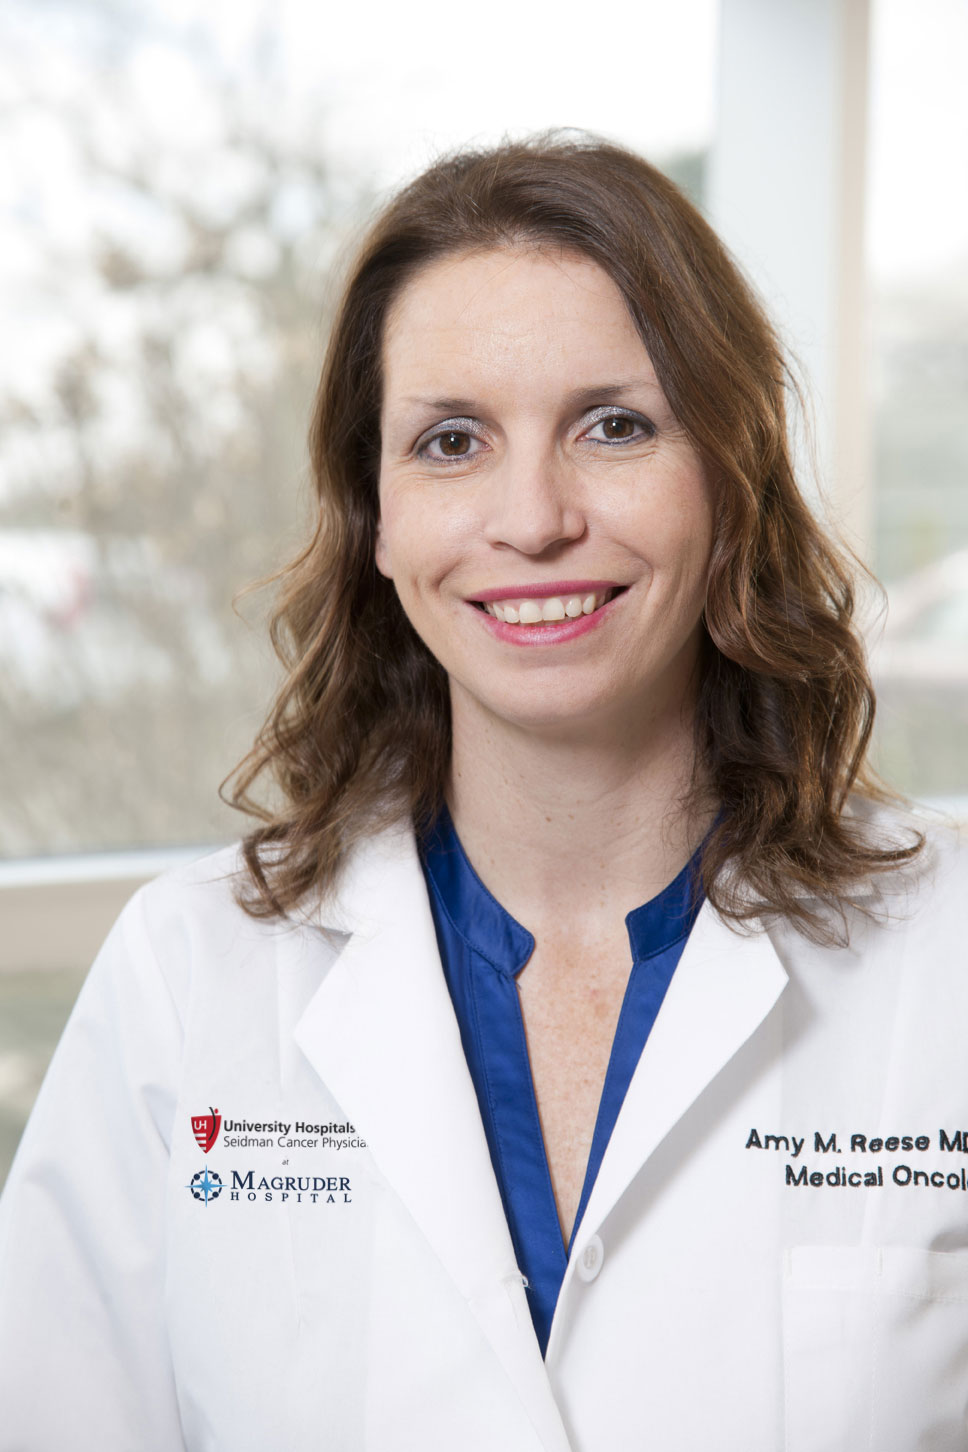 Amy Reese, MD